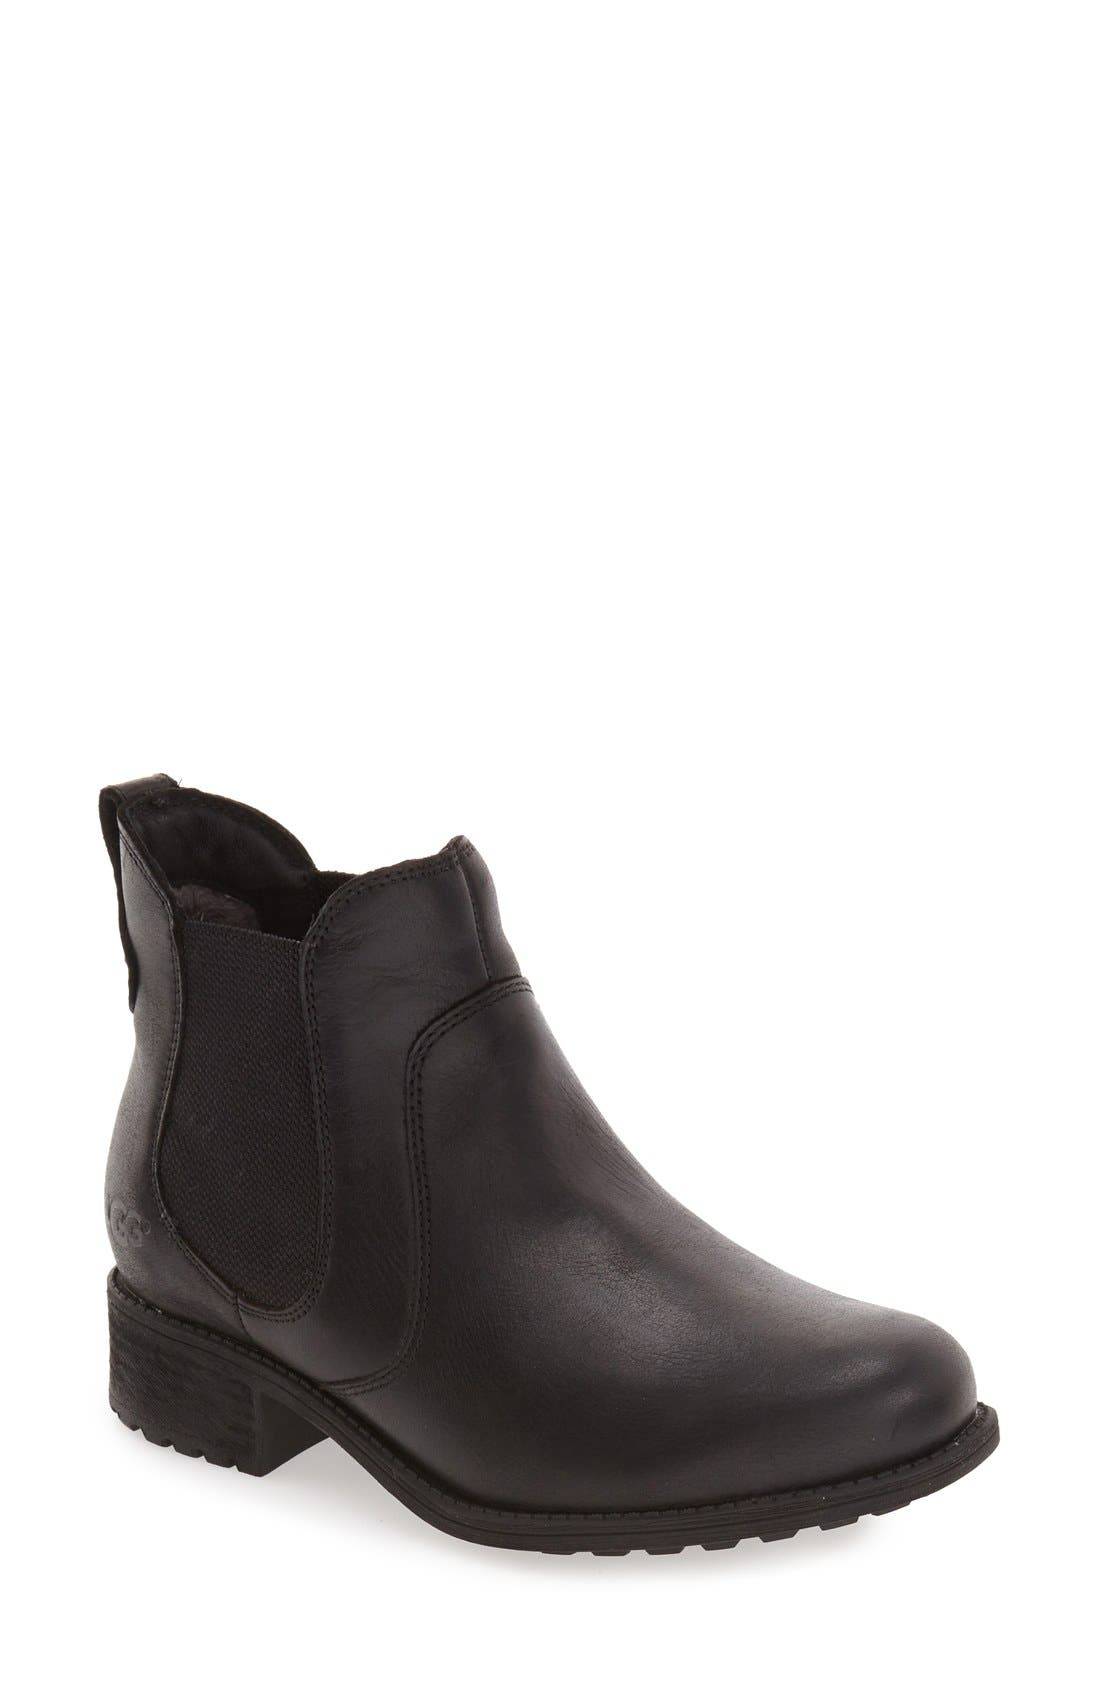 Bonham Chelsea Boot,                         Main,                         color, 001